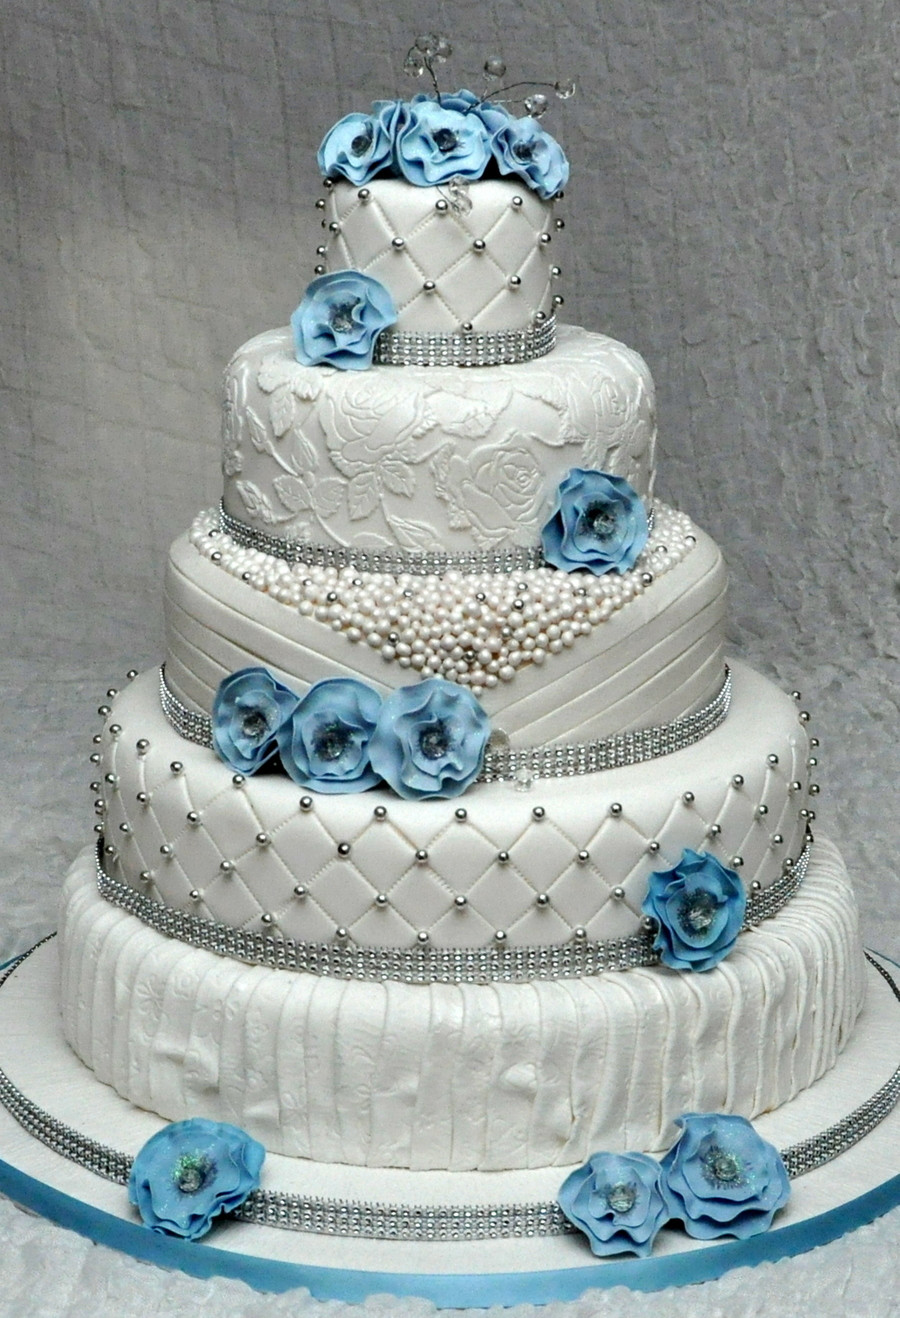 Wedding Cakes Tier  5 Tier Wedding Cake With Edible Pearls And Lace Decorated